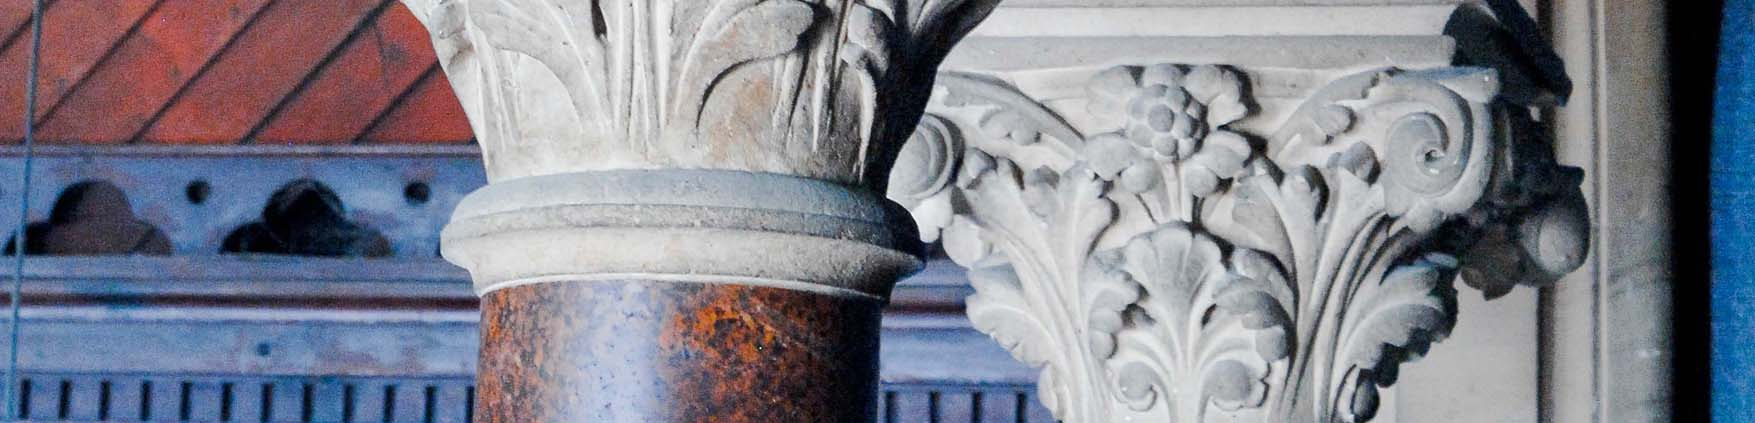 corinthian column by T Morgan Owen